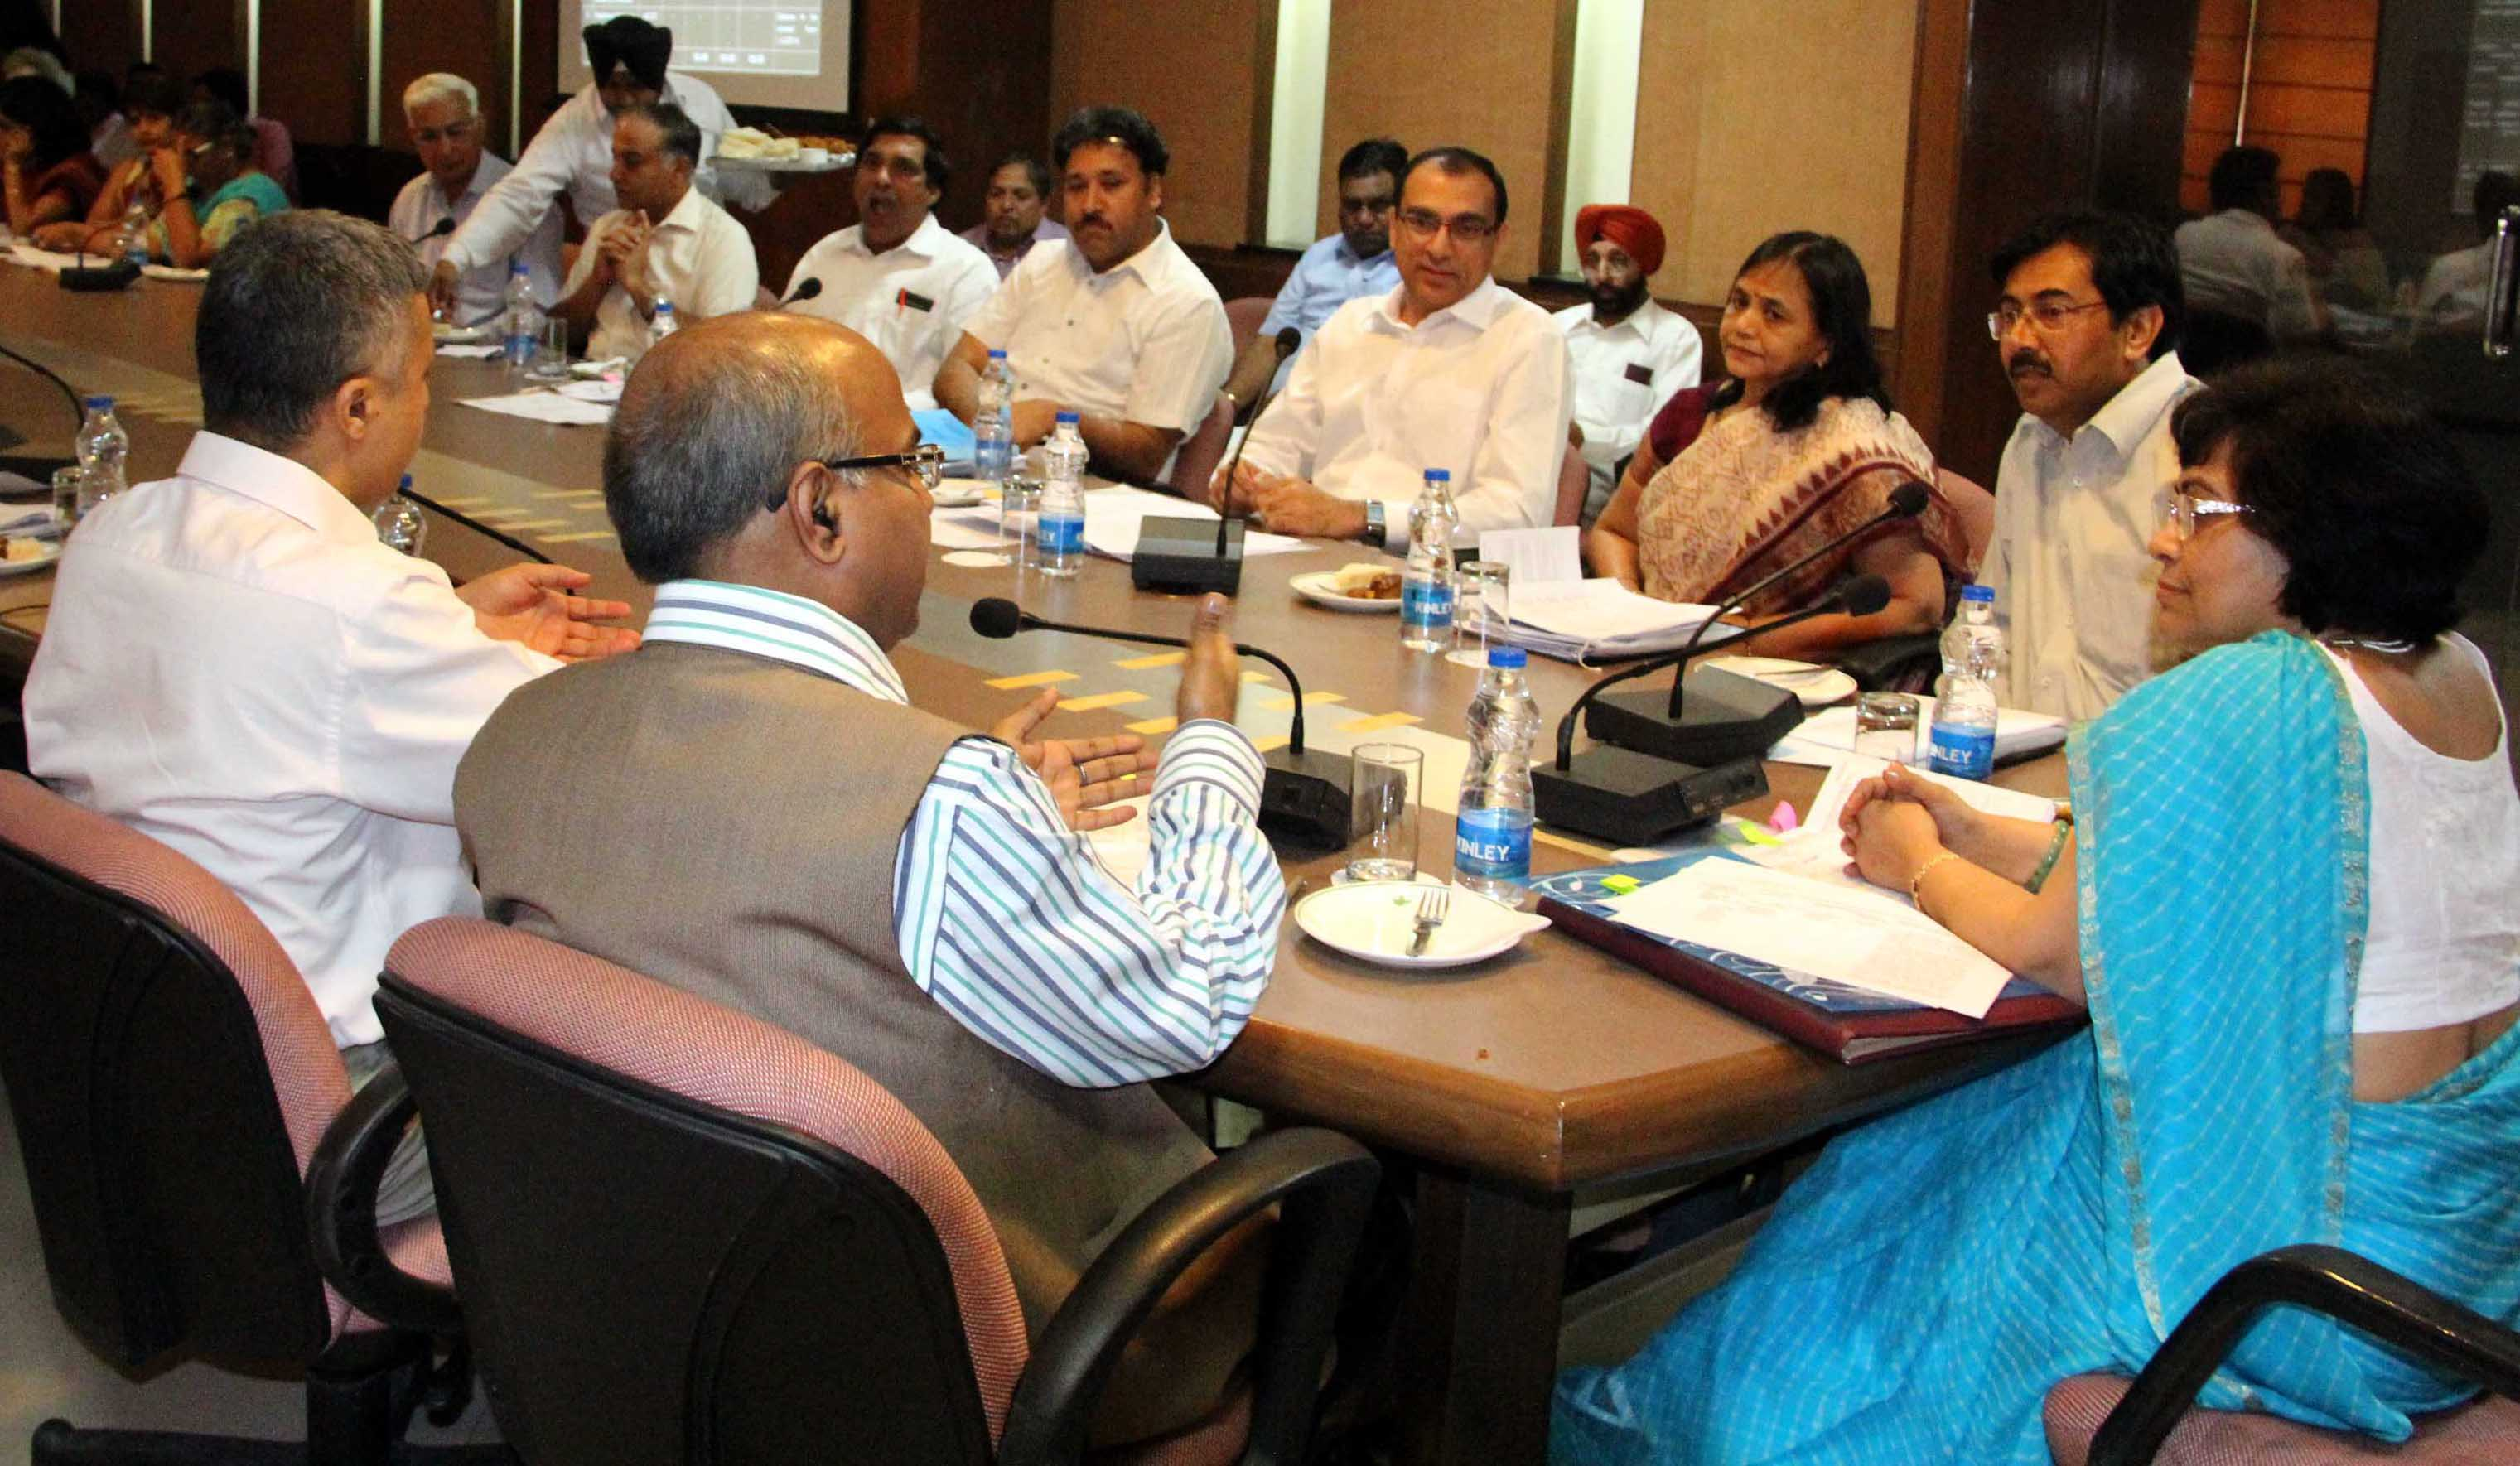 Mrs. Sneh Lata Kumar, Secretary (Border Management) Ministry of Home Affairs, New Delhi chairing the meeting with the senior officers of Chandigarh Administration to review the progress of implementation of Centrally Sponsored Schemes in UT, Chandigarh at UT State Guest House, Chandigarh on Monday, April 21, 2014.